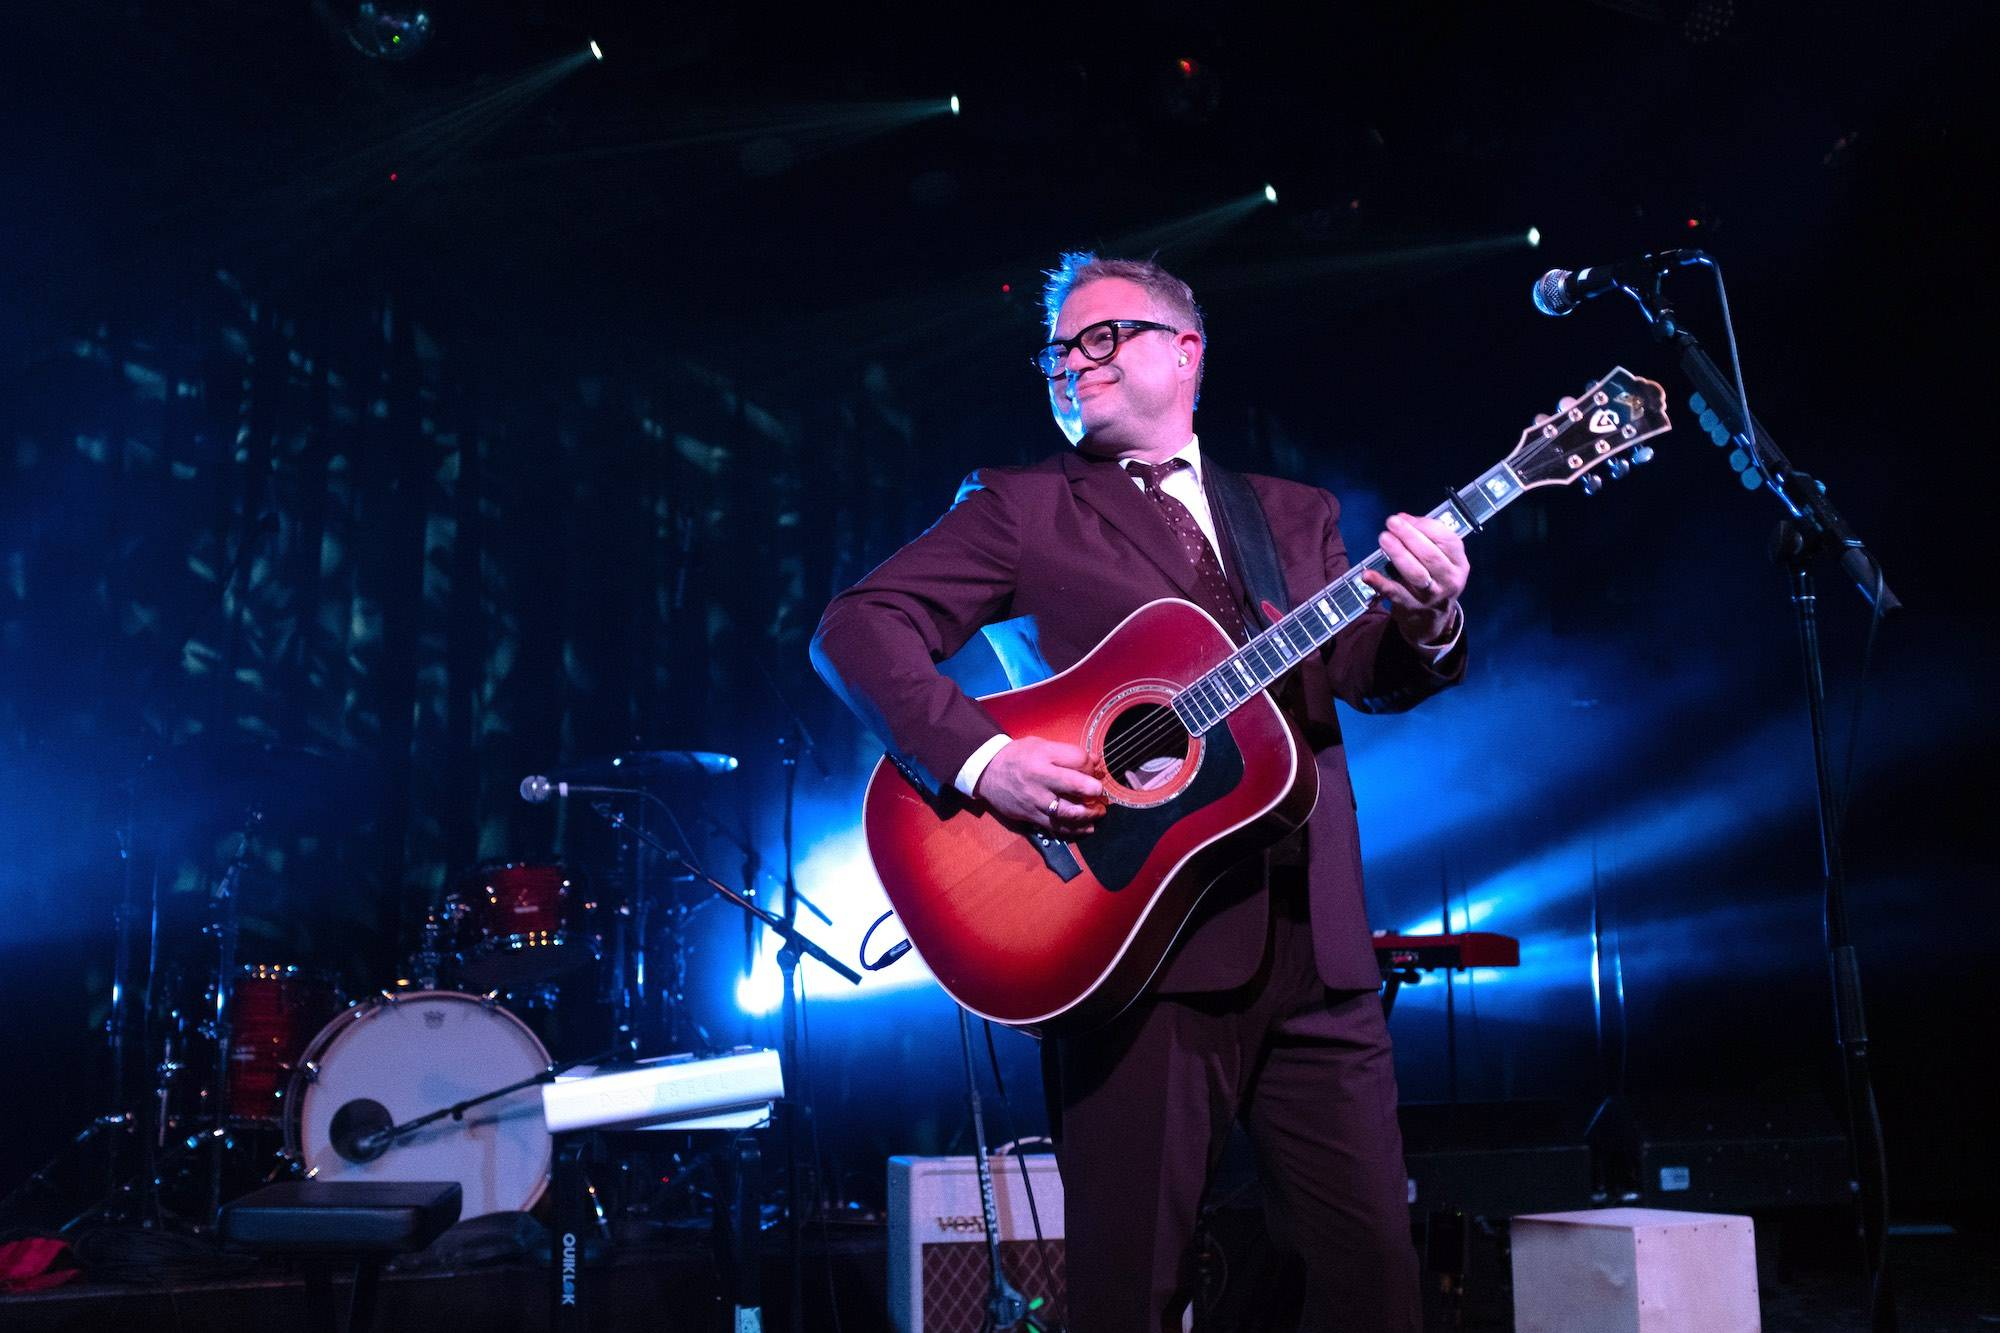 Steven Page at the Commodore Ballroom, Vancouver, May 31 2019. Scott Alexander photo.